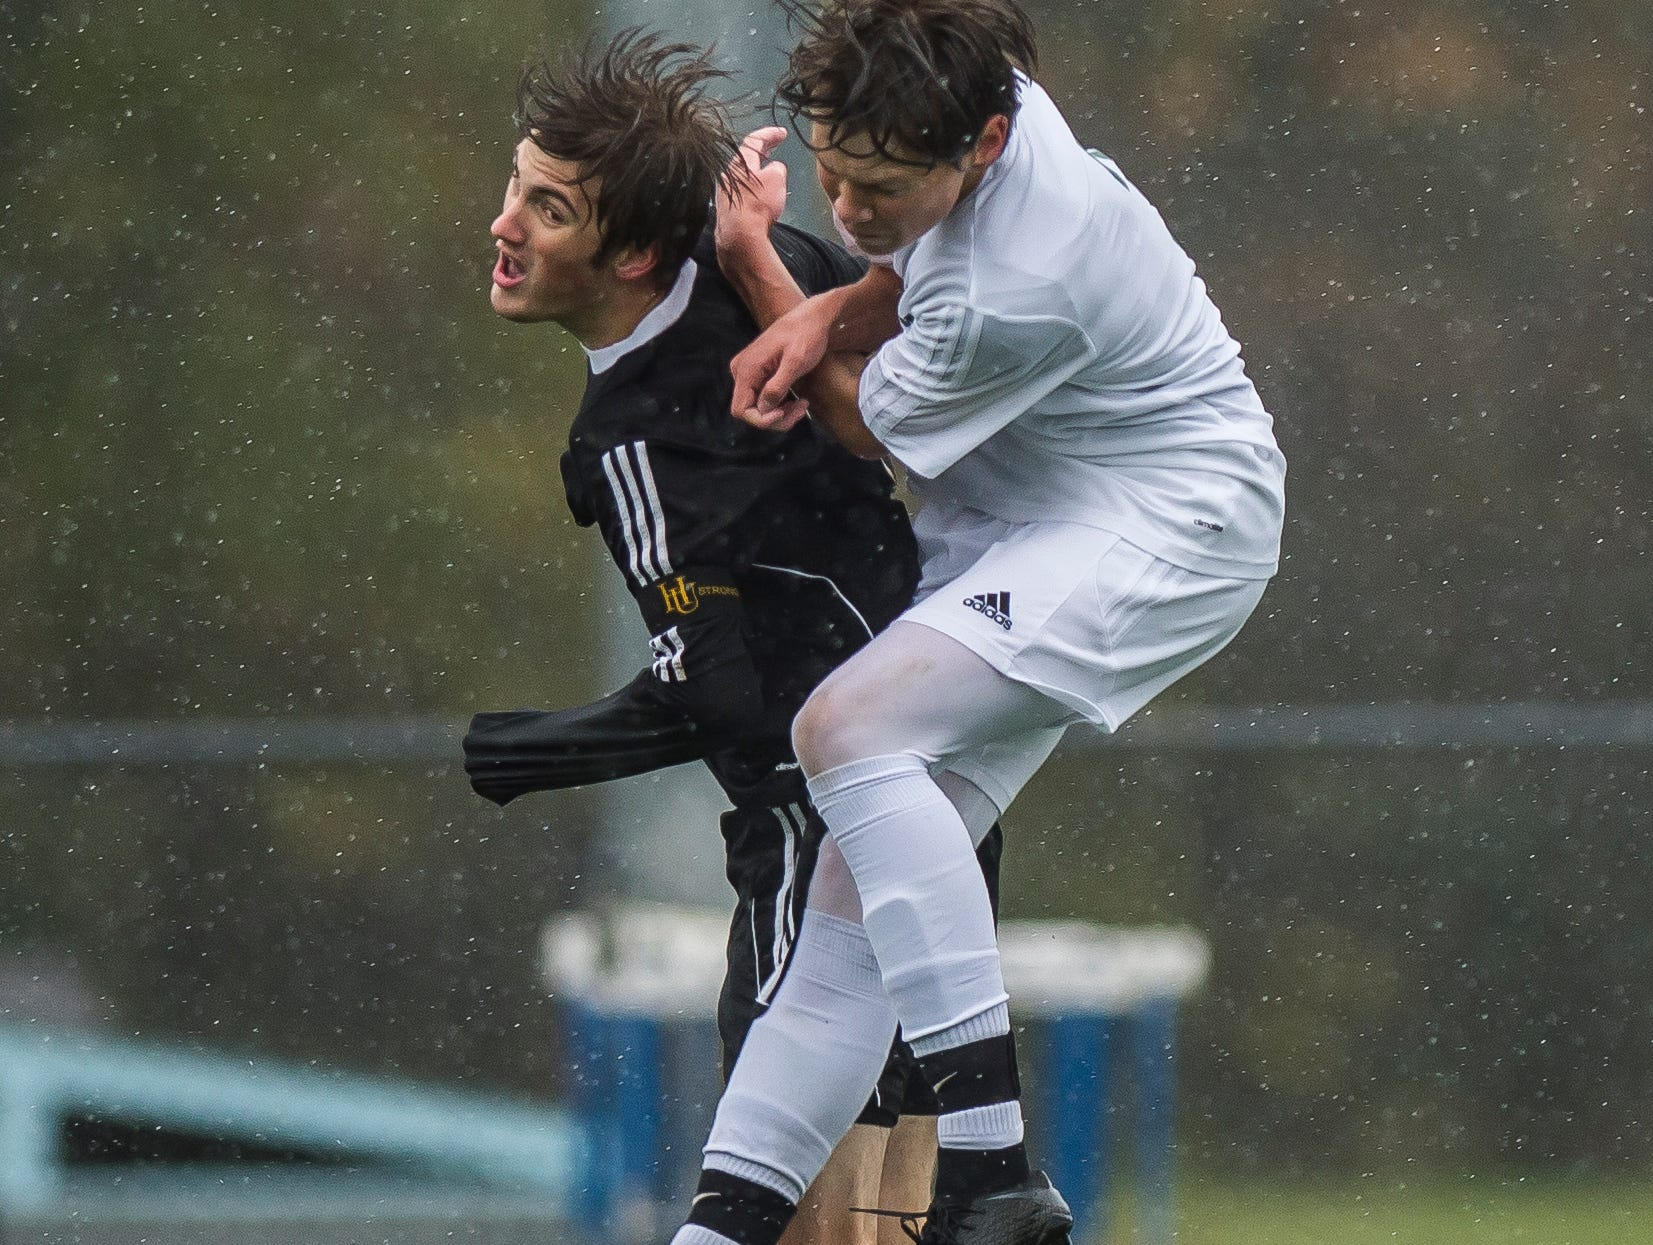 Hardwood #3 Will Lapointe and Woodstock #3 Blake Heston collide going for the header during their Div. 2 Vermont State high school boy's soccer championship game at South Burlington High School on Saturday, Nov. 3, 2018. Hardwood Union won, 3-0.